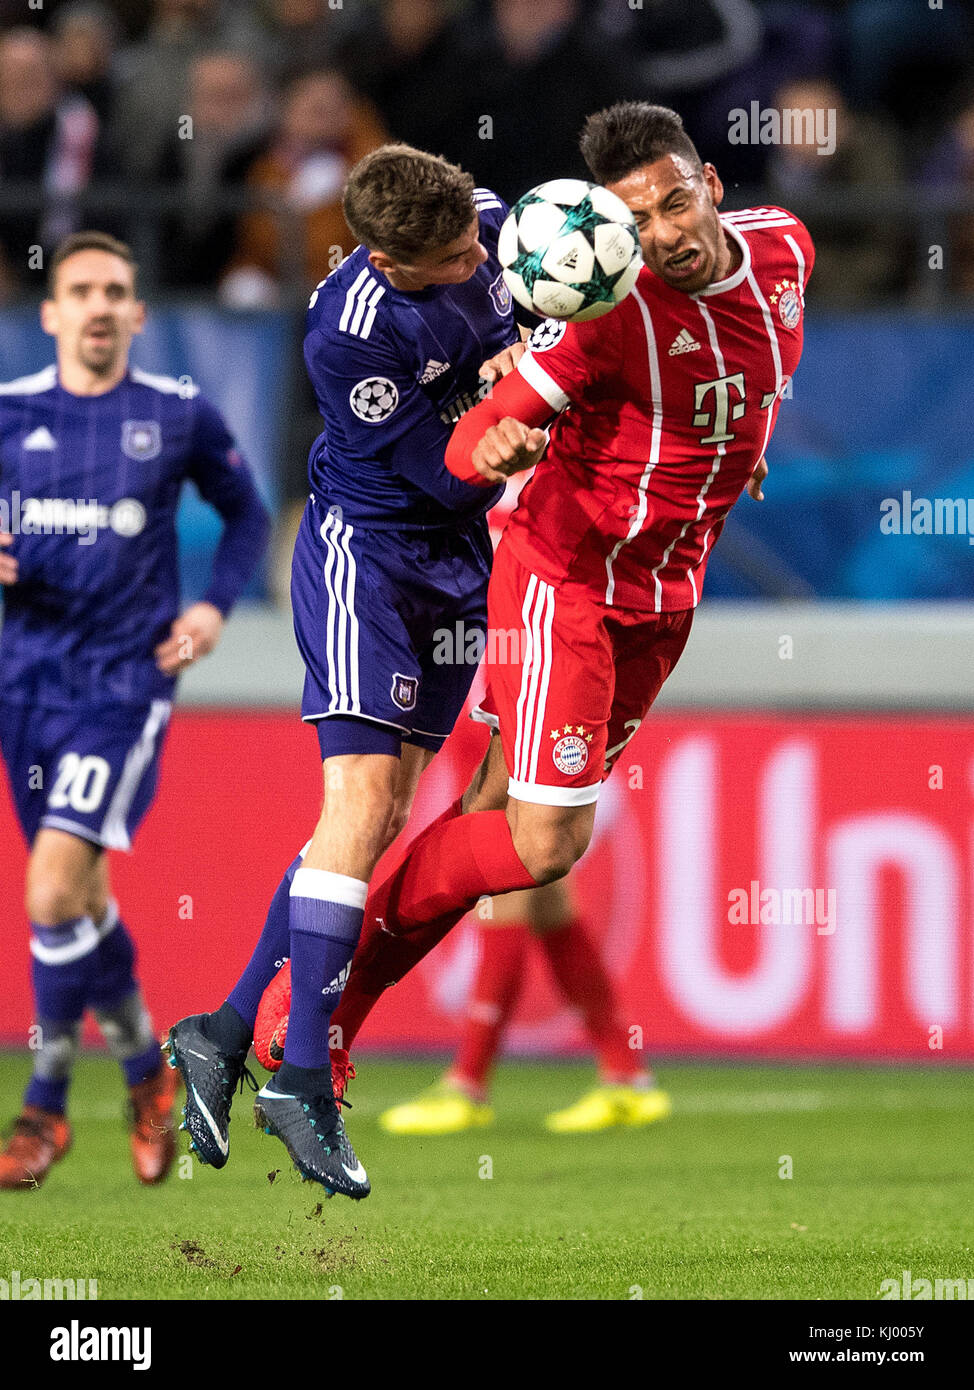 Munich's Corentin Tolisso (R) and Anderlecht's Pieter Gerkens vie for the ball during the Champions League - Stock Image